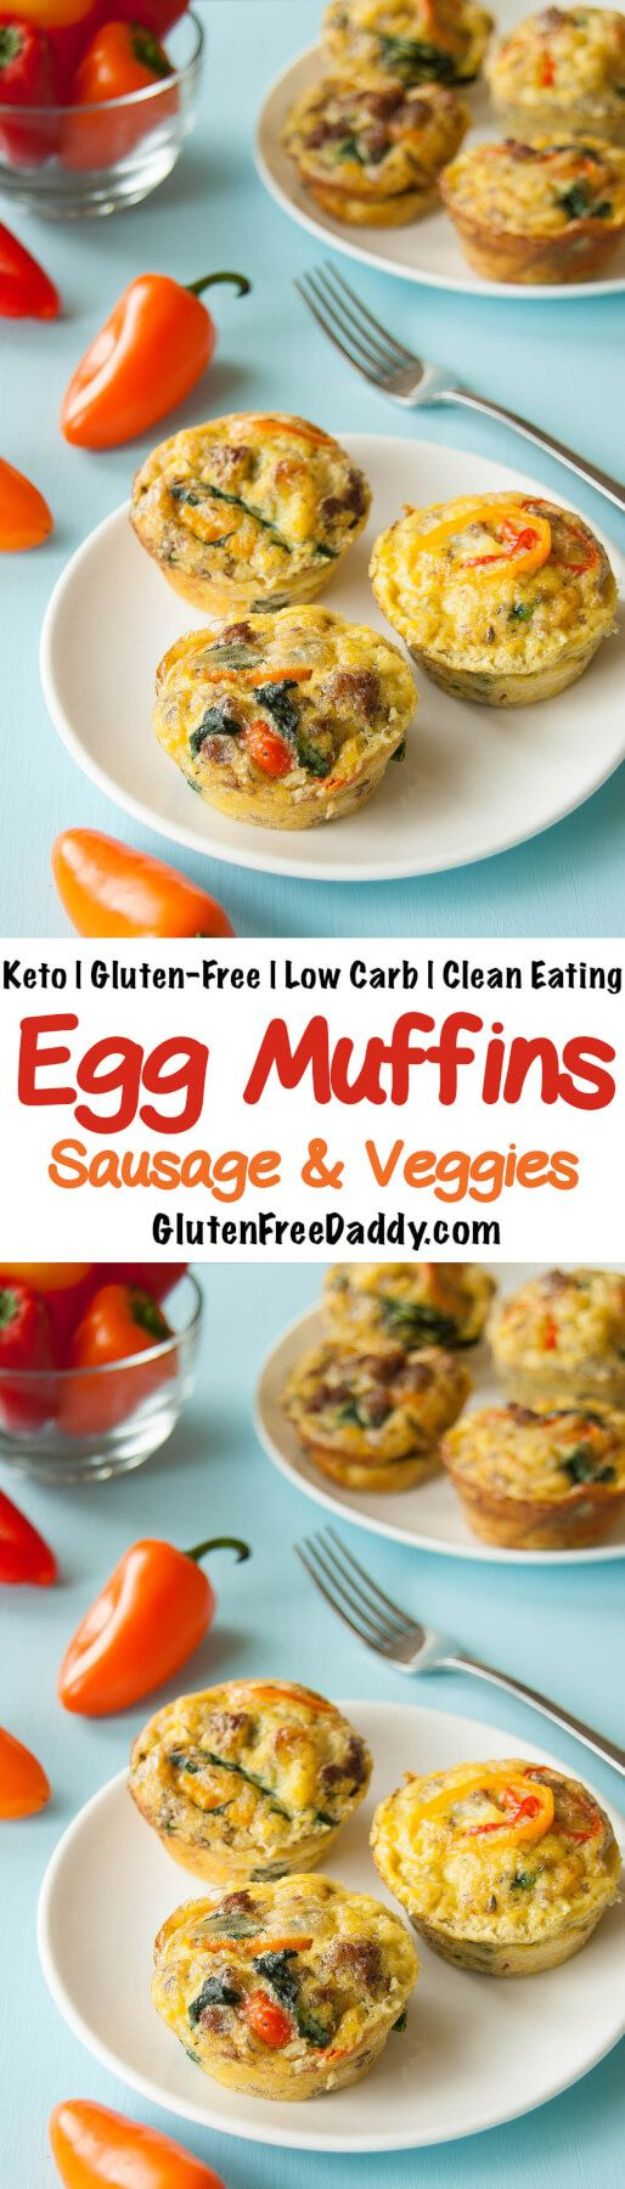 Keto Breakfast Recipes - Keto Egg Muffins with Sausage and Veggies - Low Carb Breakfasts and Morning Meals for the Ketogenic Diet - Low Carbohydrate Foods on the Go - Easy Crockpot Recipes and Casserole - Muffins and Pancakes, Shake and Smoothie, Ideas With No Eggs #keto